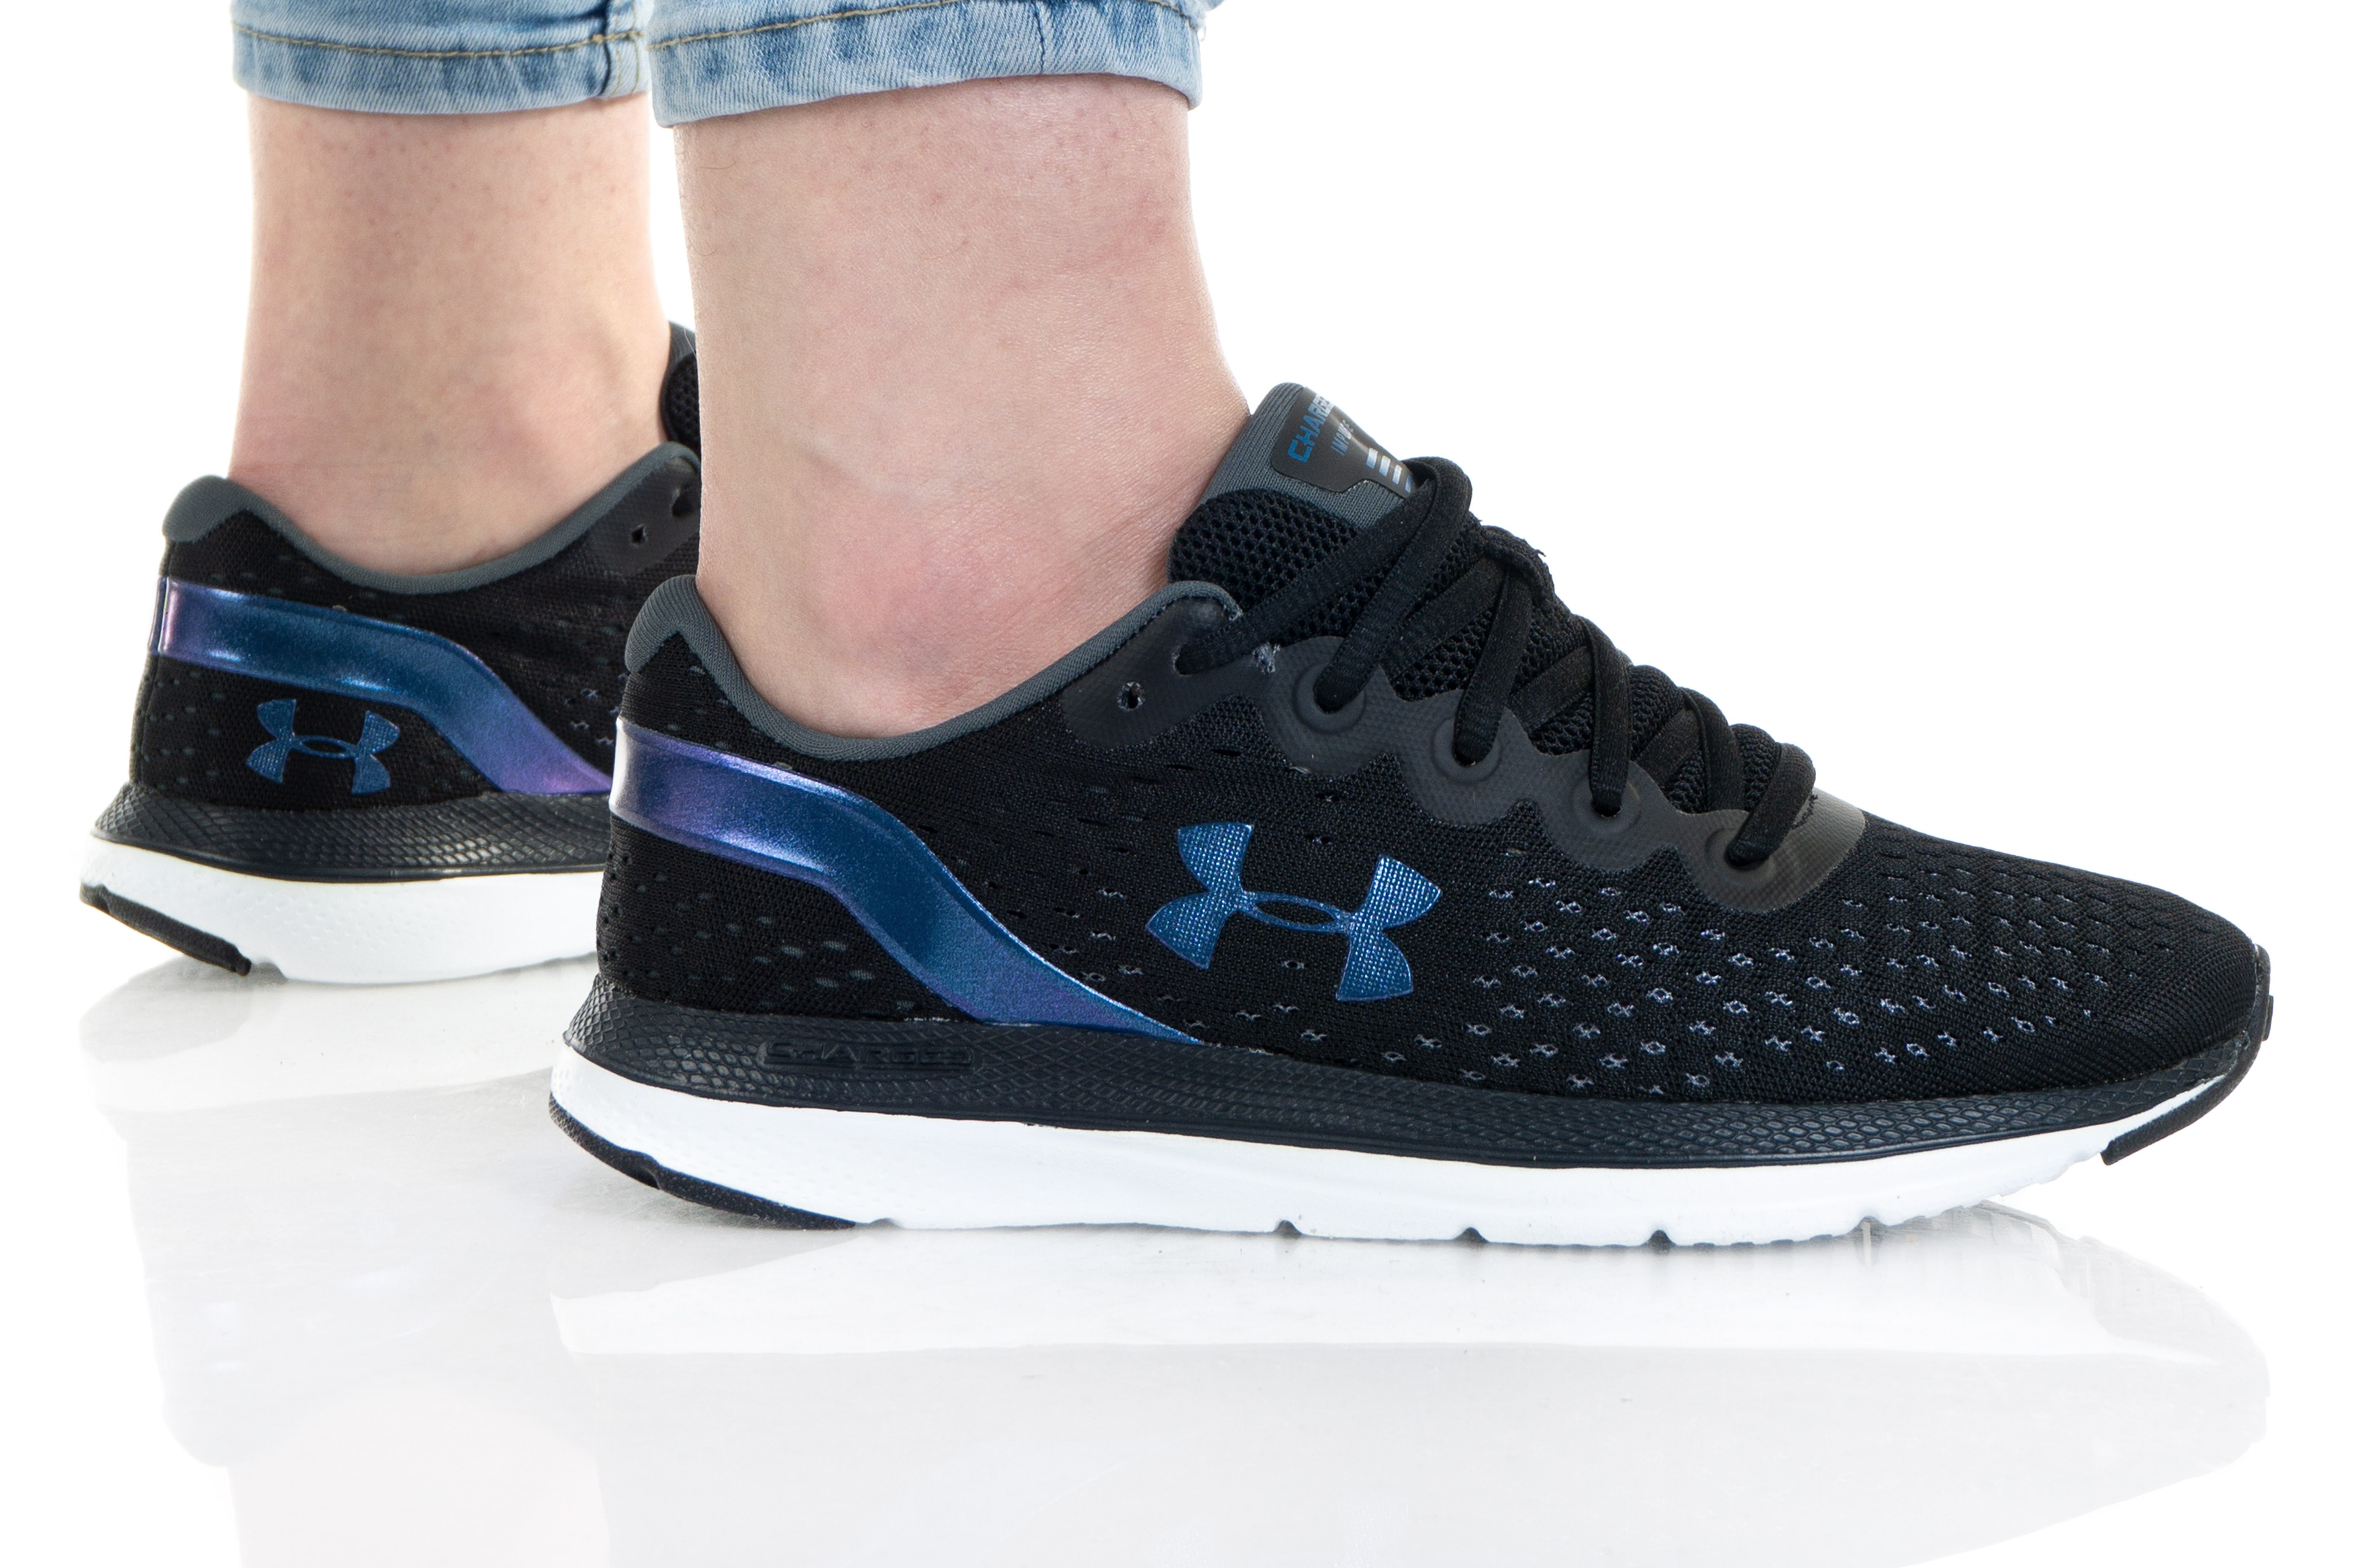 Under Armour Charged Impulse Shft 3024444-001